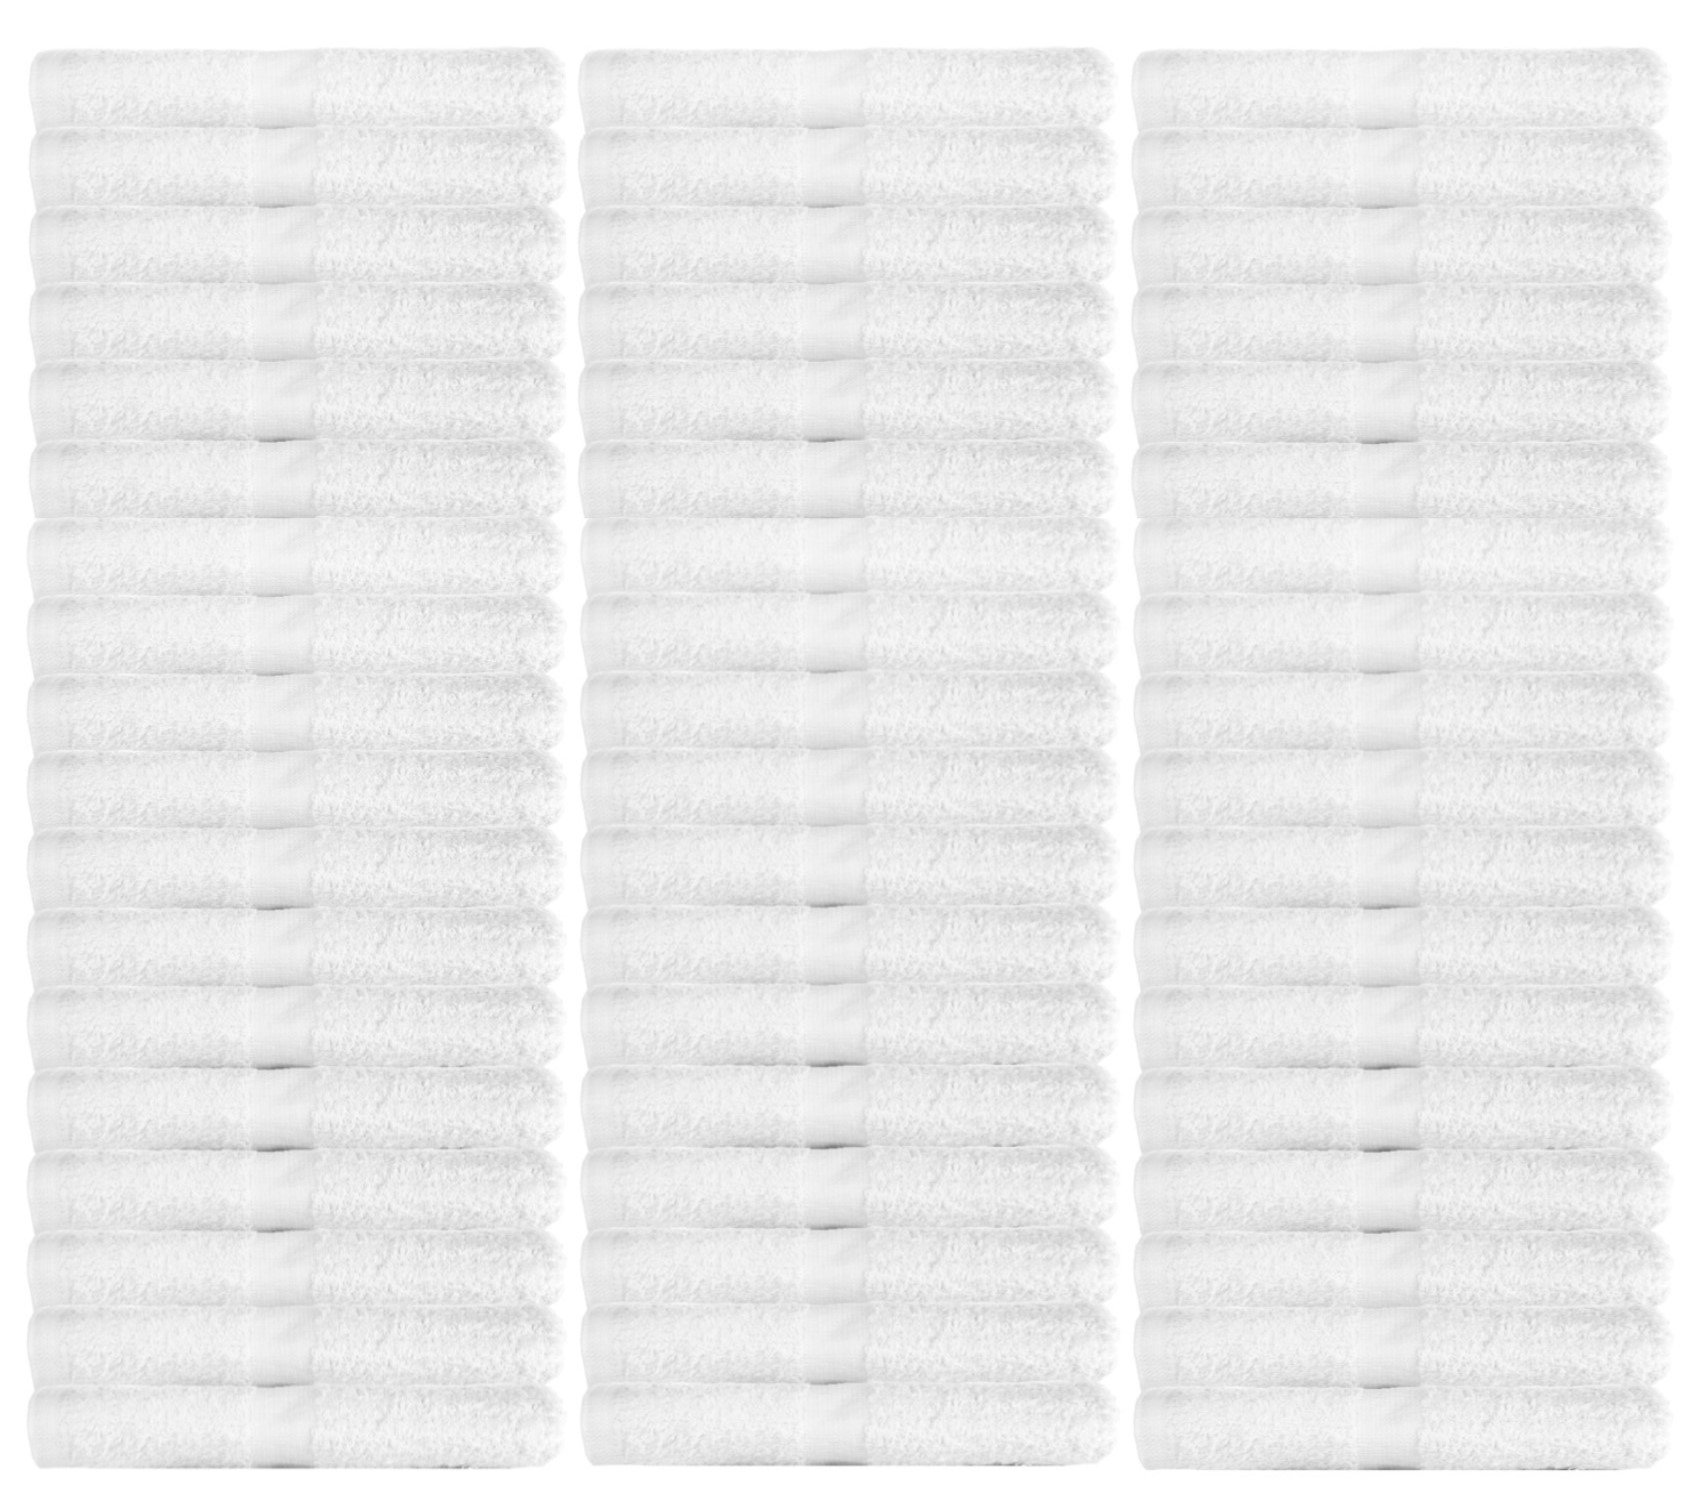 WhiteBasics Cotton Washcloths for Bathroom-KitchenCleaning-Hotel-Gym - Super Soft Absorbent Towels - 48 Pack - White - 12x12 Inch